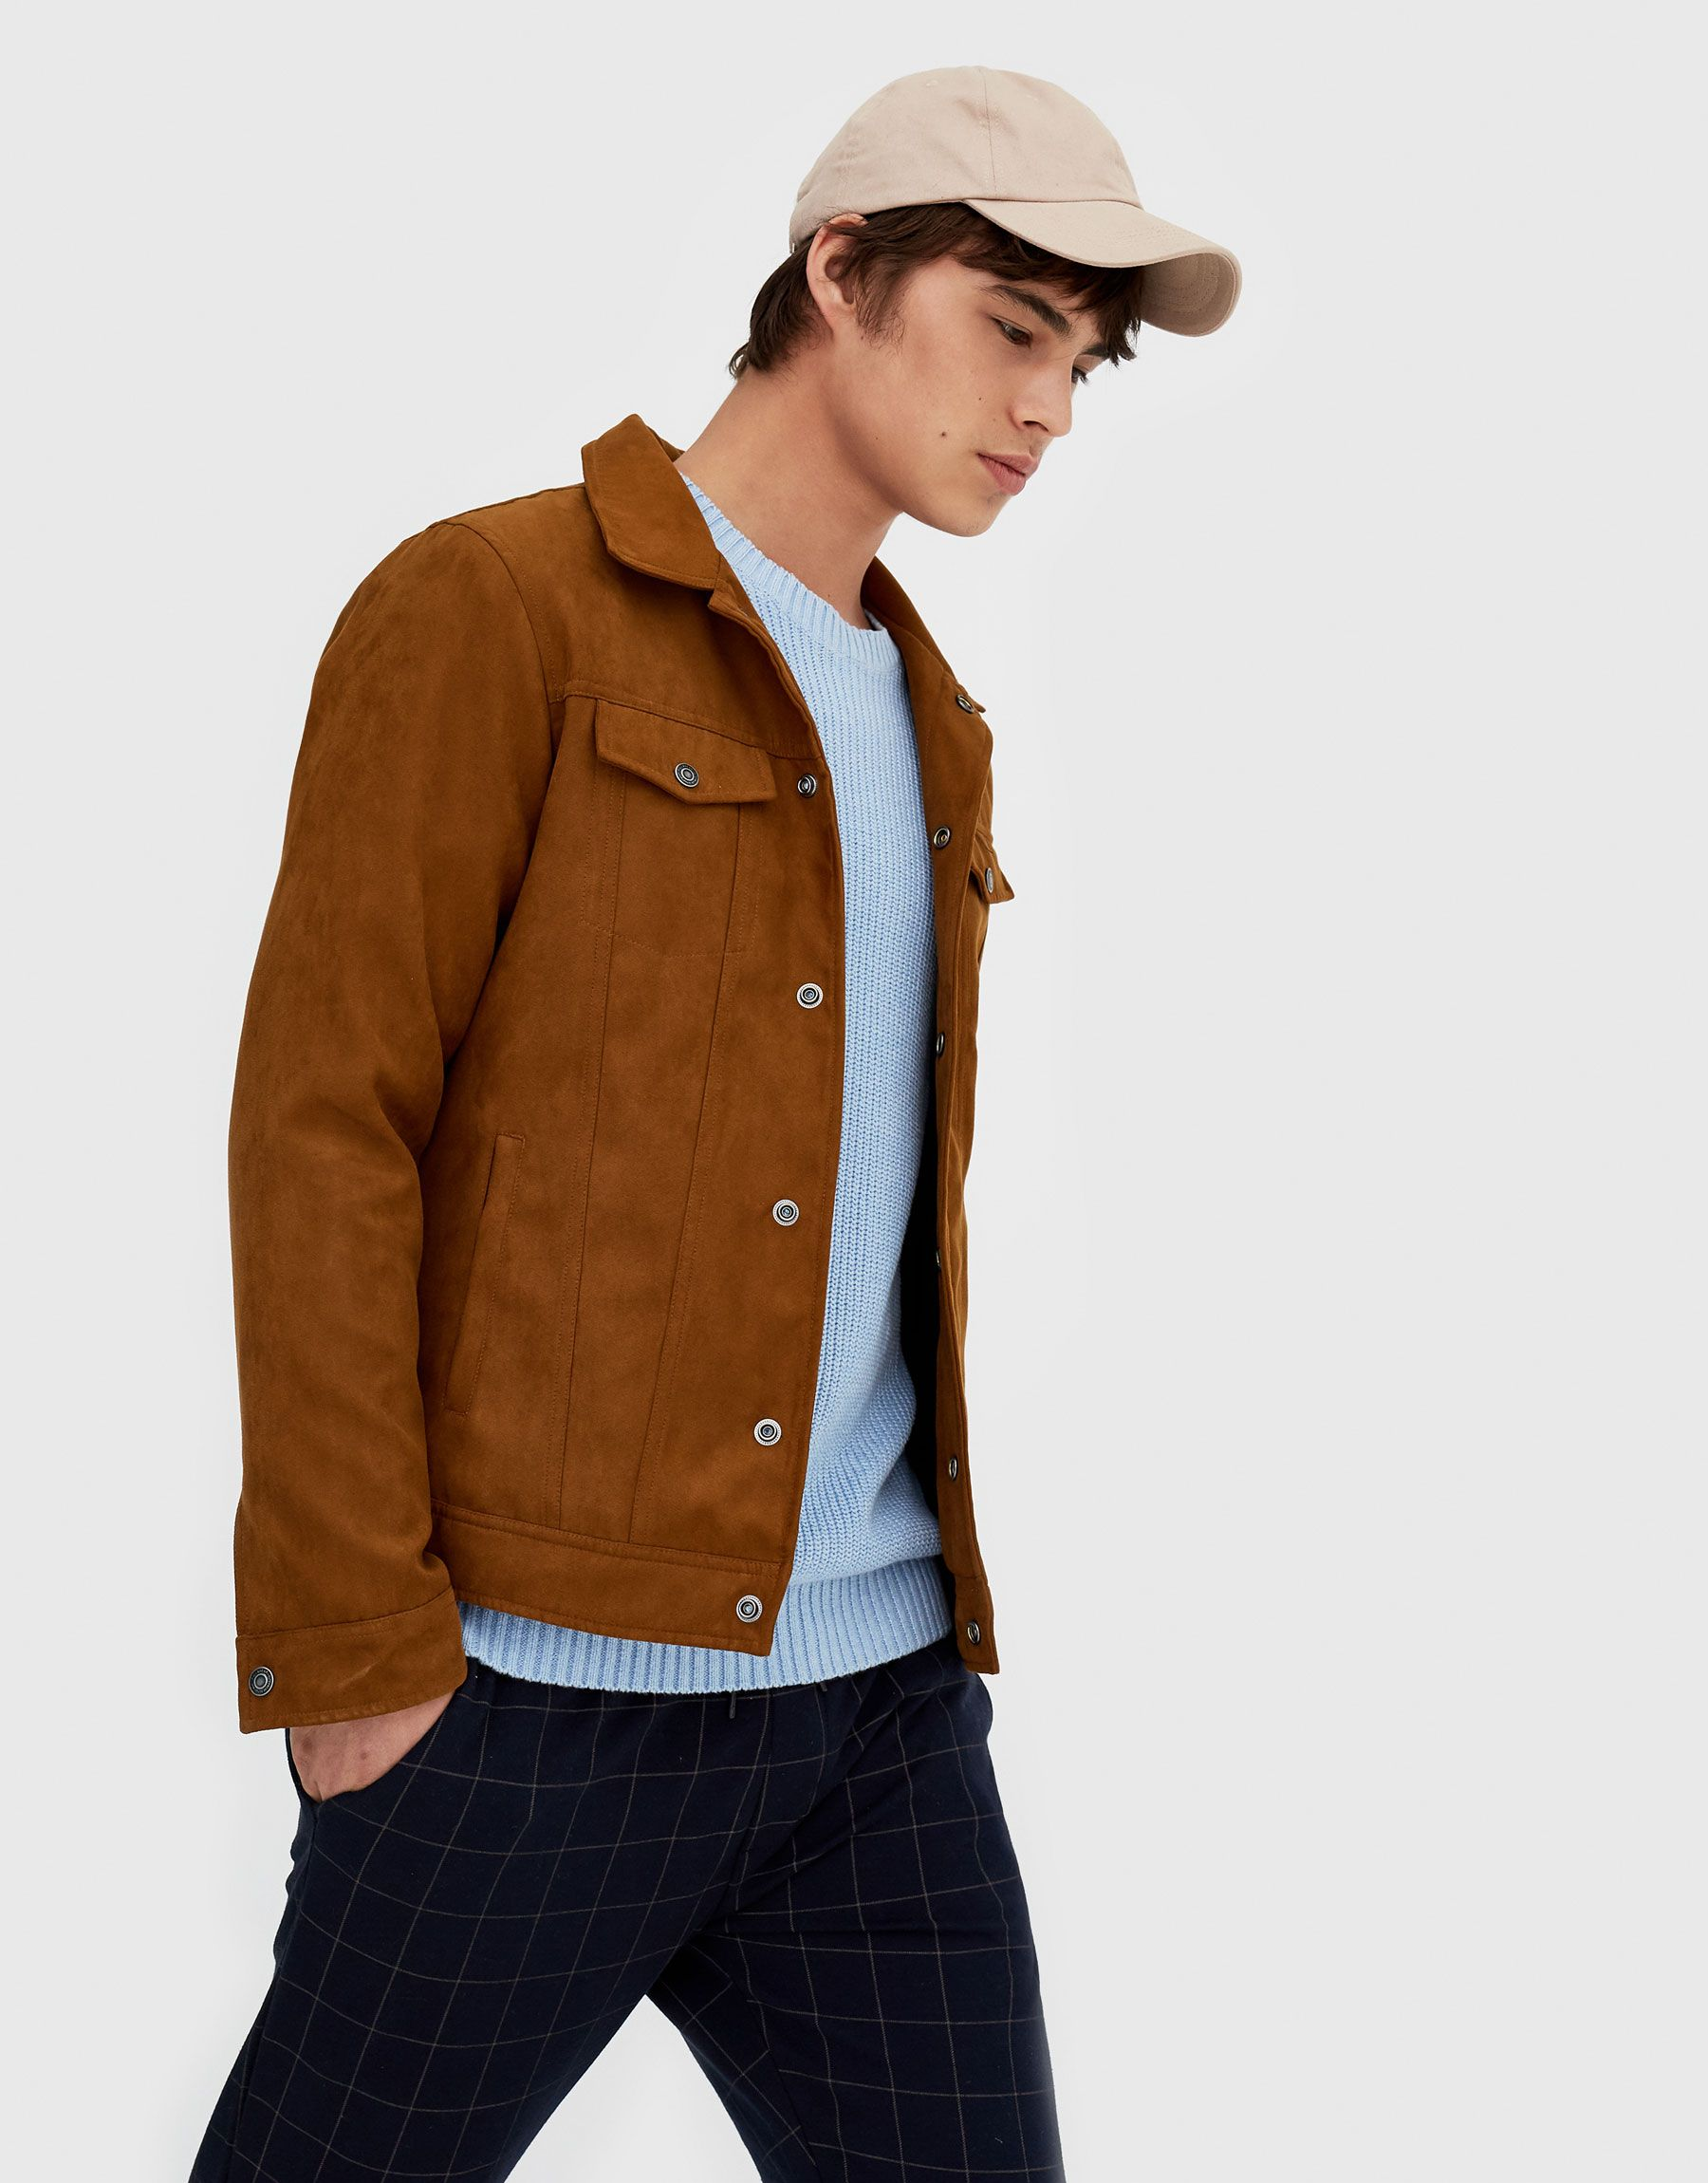 Pull Bear Man New Faux Suede Trucker Jacket Ochre 05711519 V2018 Mens Clothing Guide Mens Outfits Men Fashion Casual Outfits